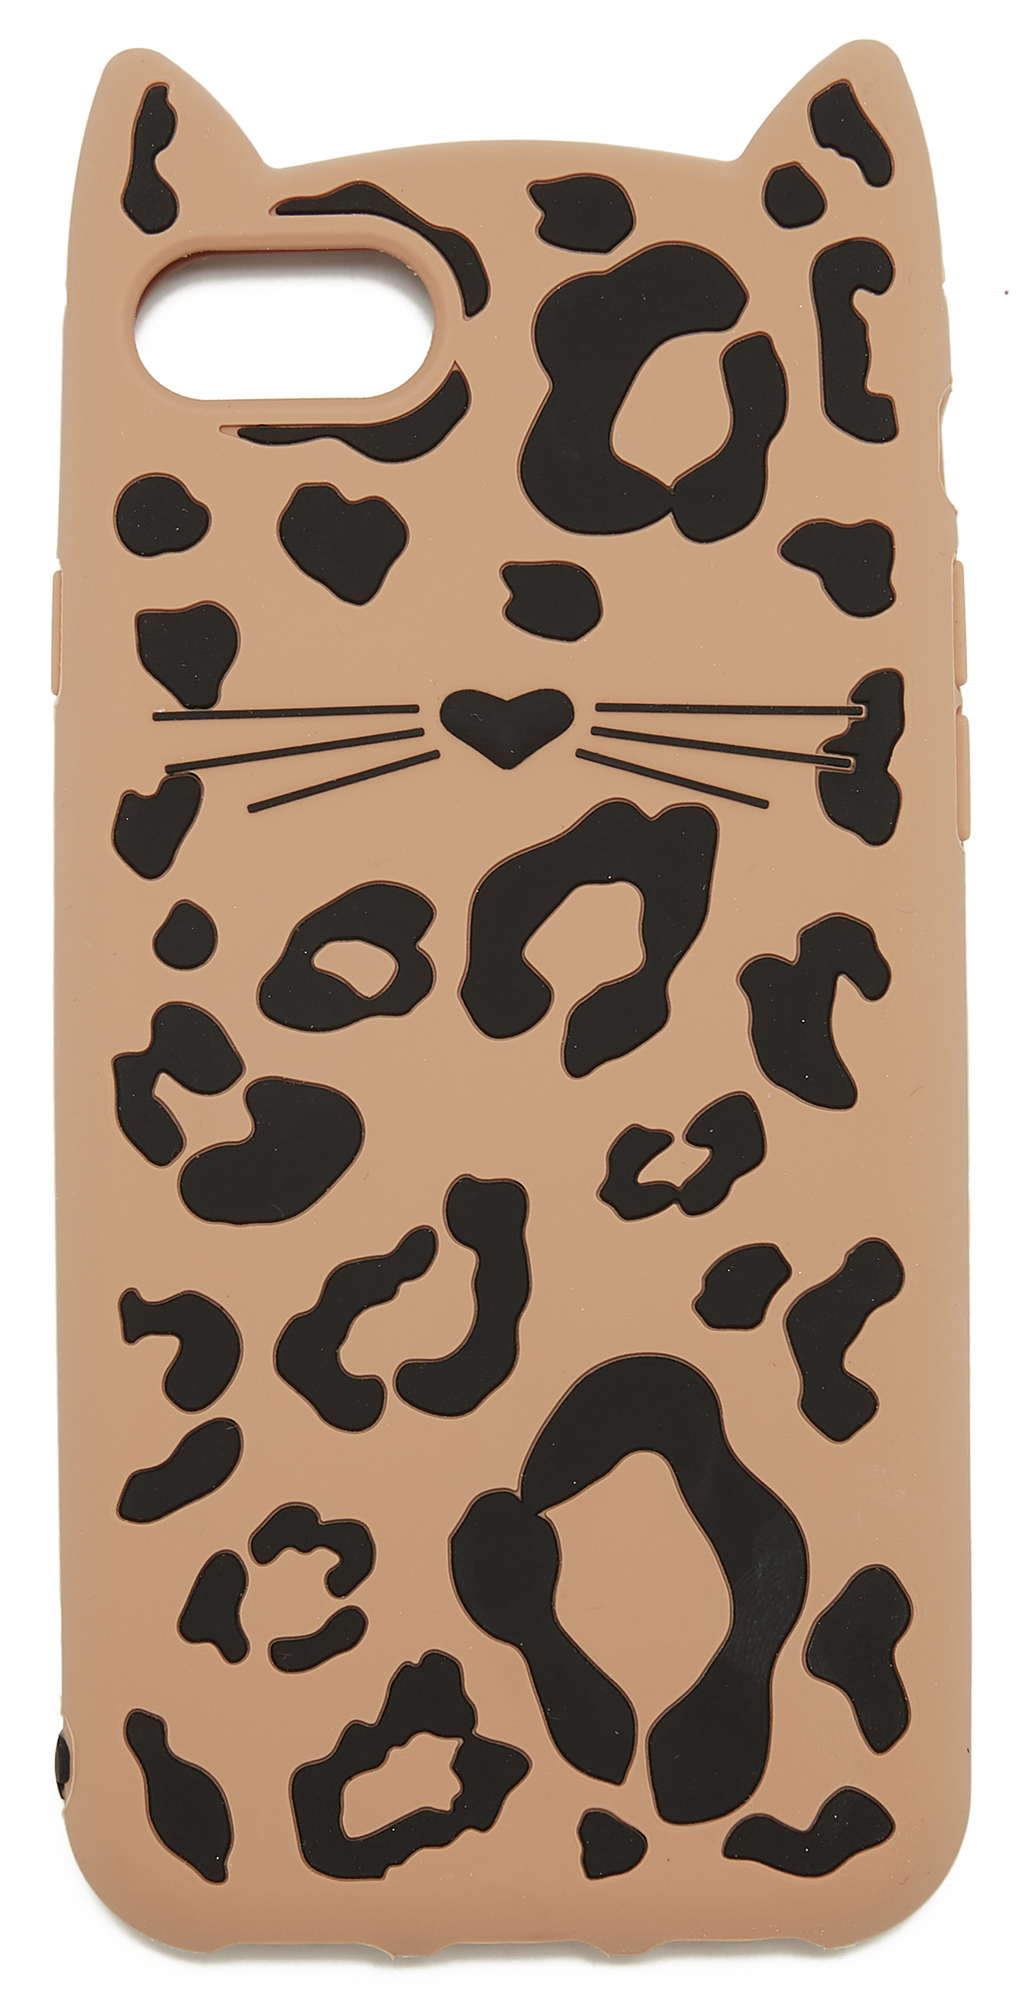 Silicone Cheetah Cat iPhone 7 Case Kate Spade New York